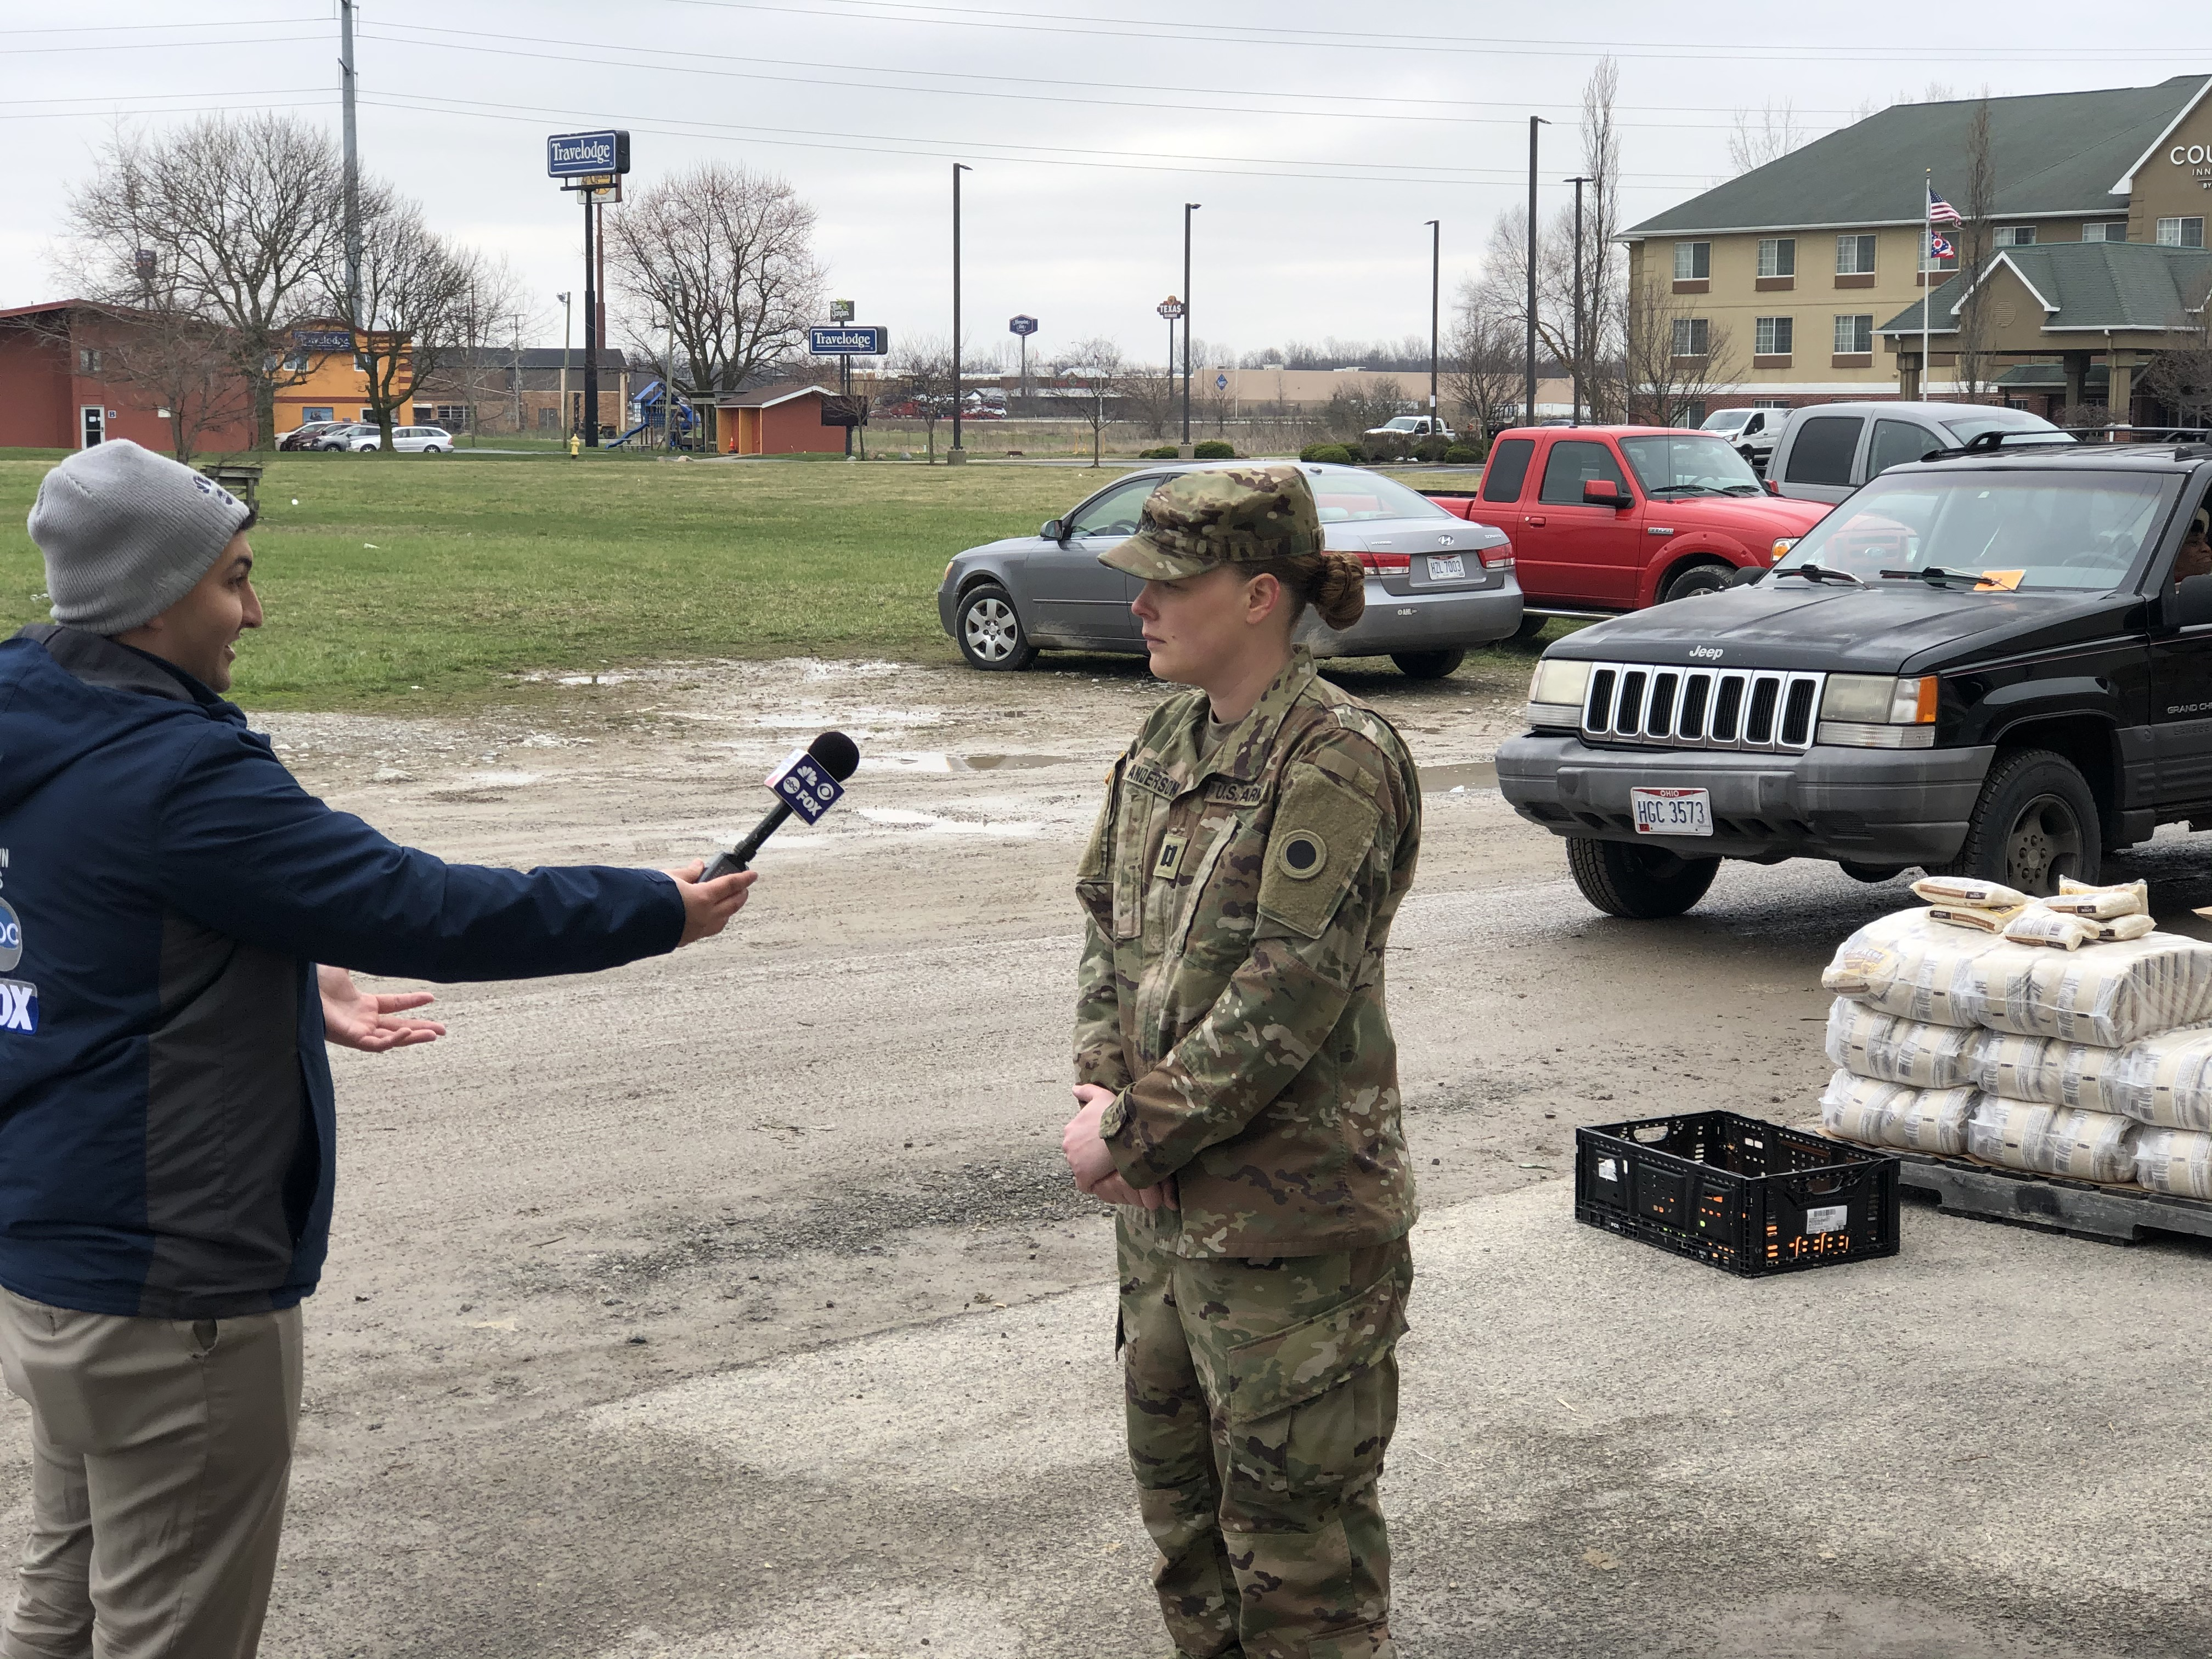 Soldier interviewed in parking lot.